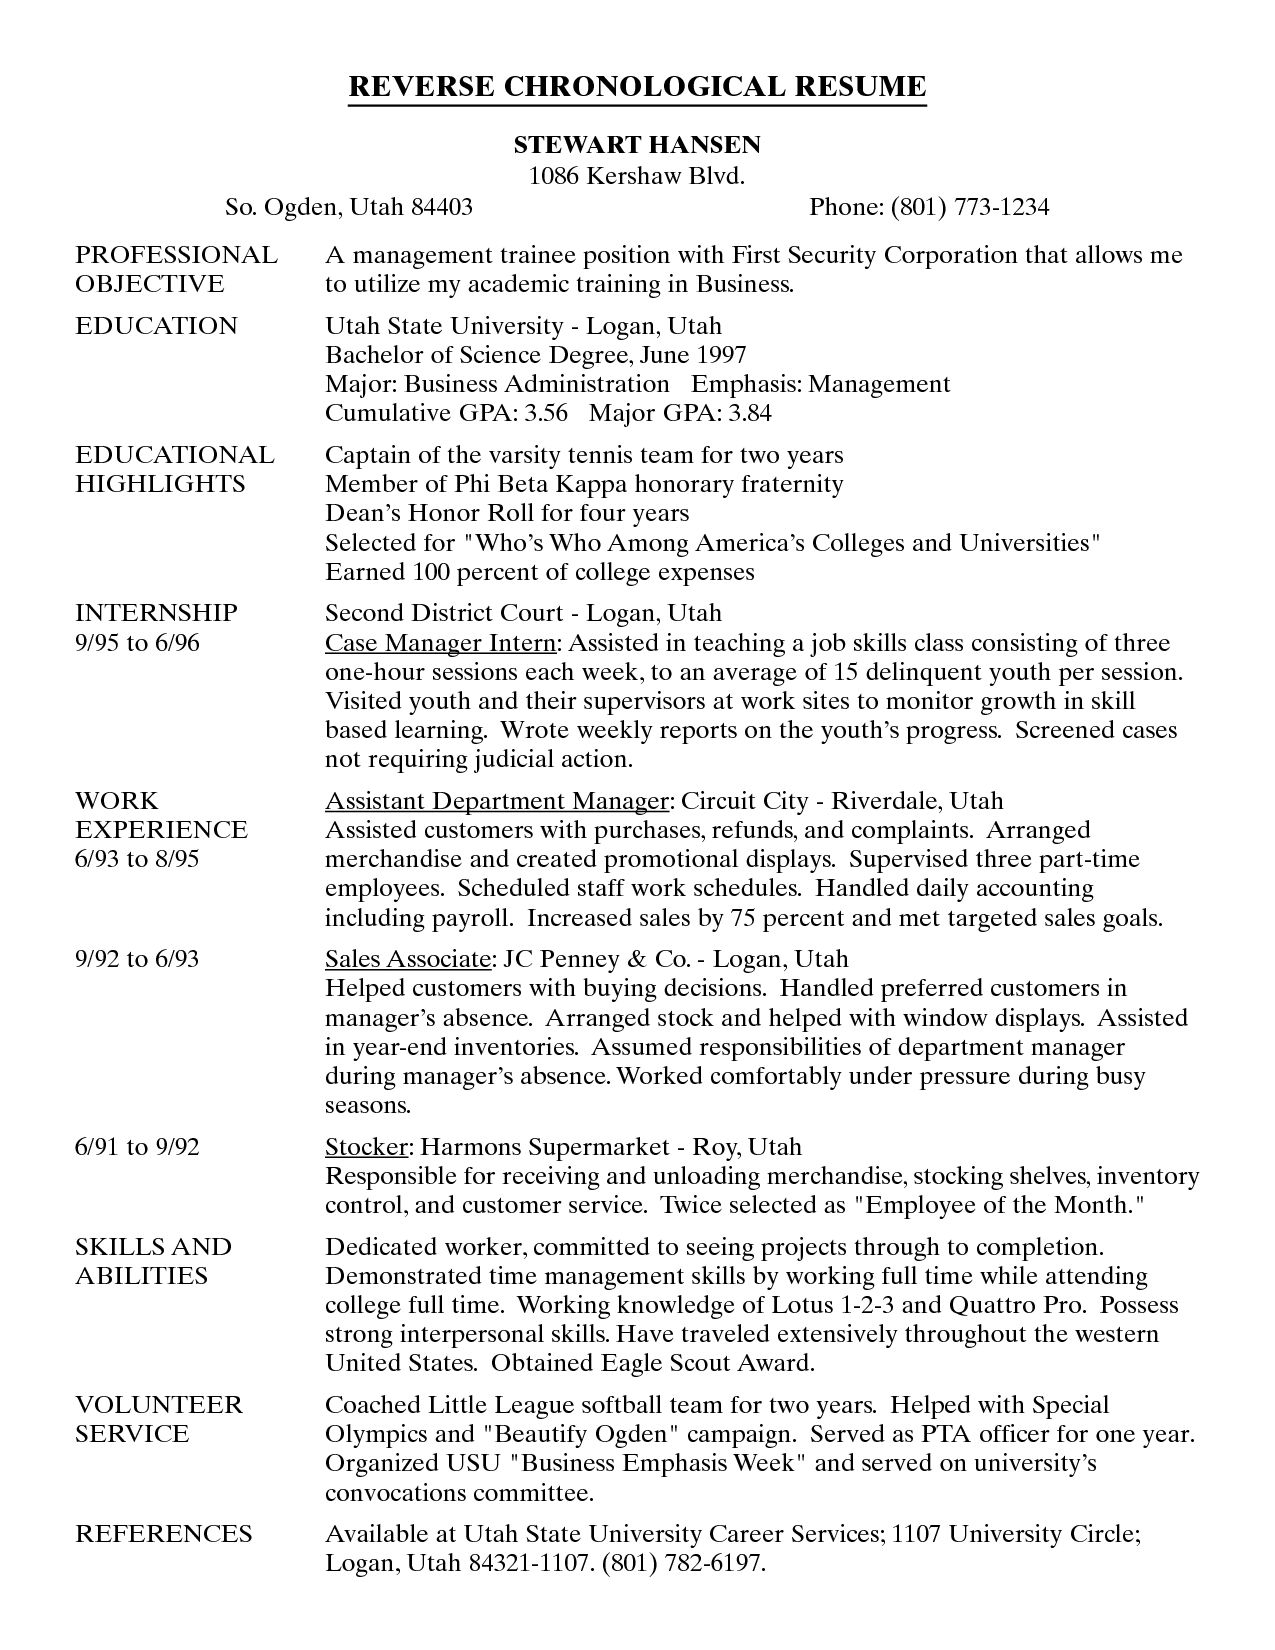 resume example reverse chronological - frizzigame - Examples Of Chronological Resume